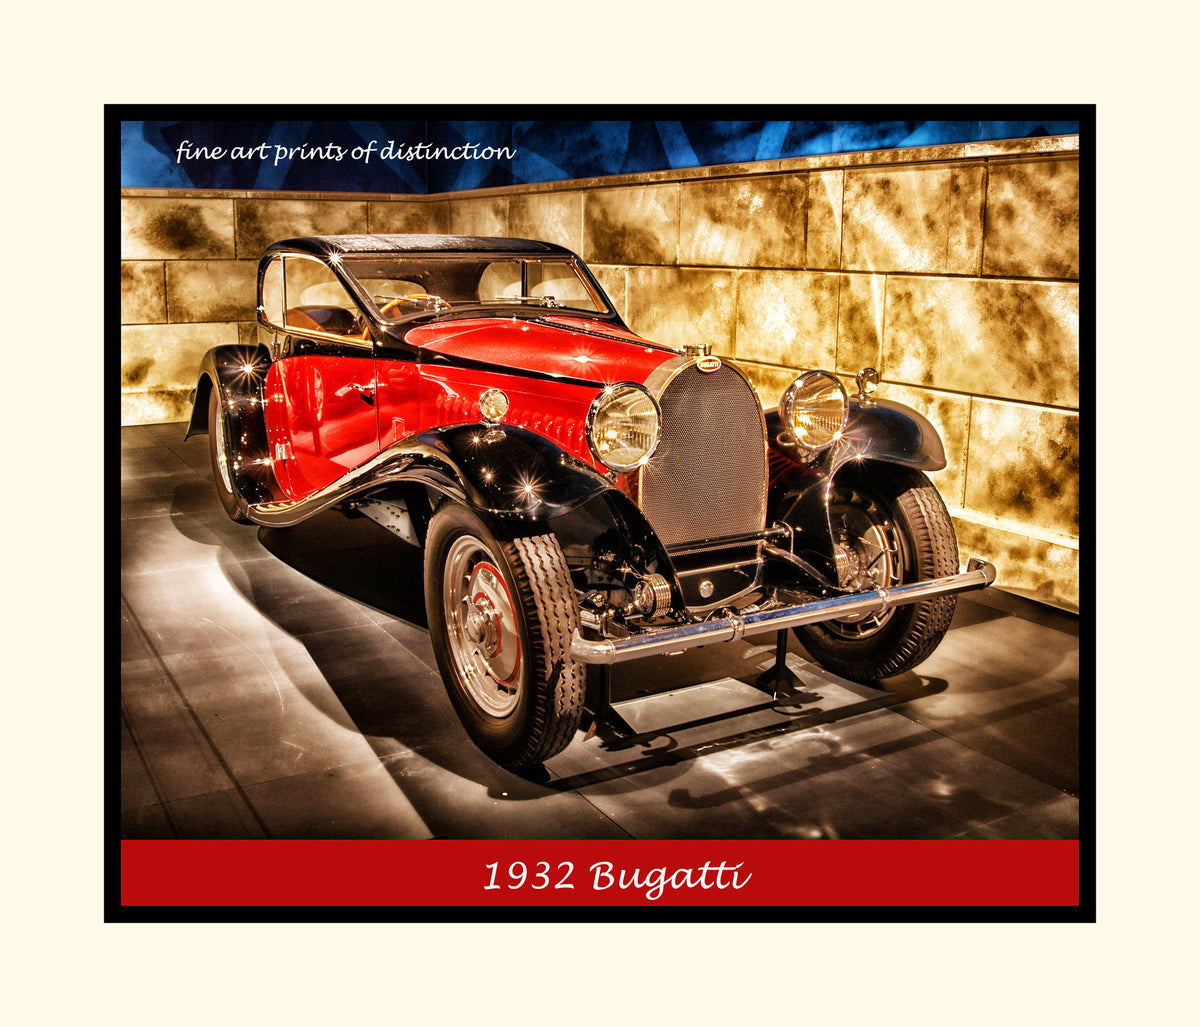 A premium poster of a 1932 Red Bugatti Antique Car